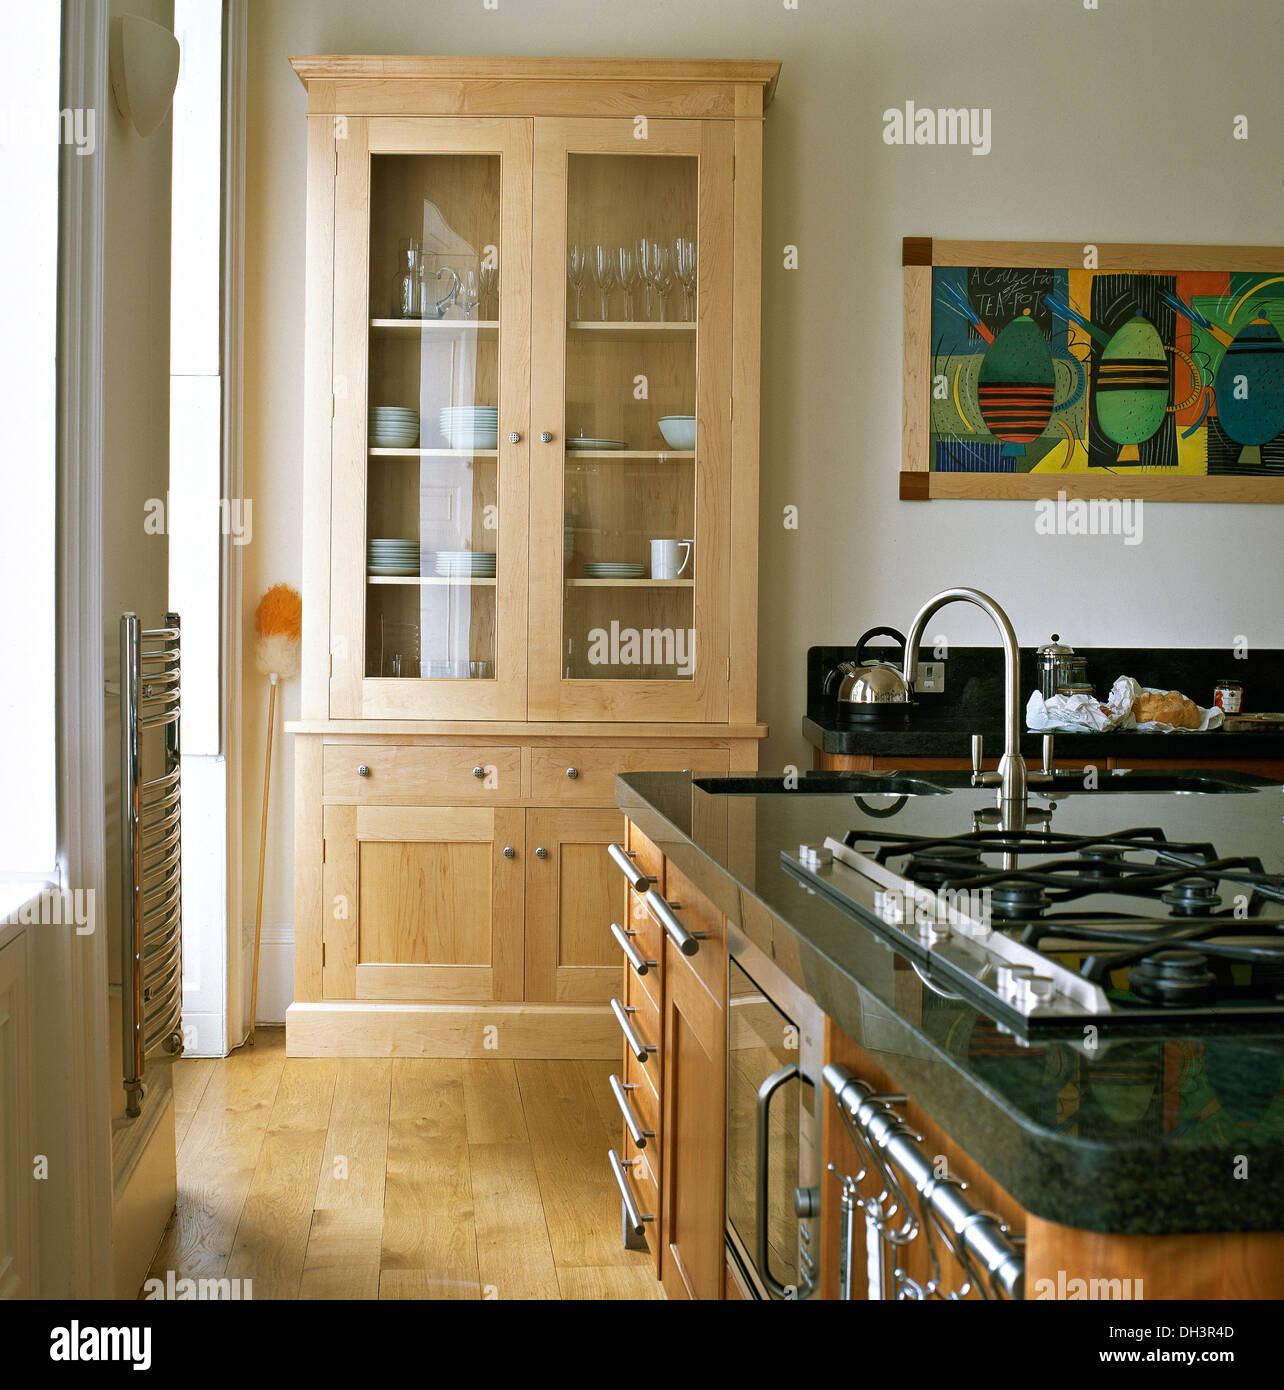 Gas Hob And Sink With Chrome Tap In Central Island Unit In Modern Stock Photo Royalty Free